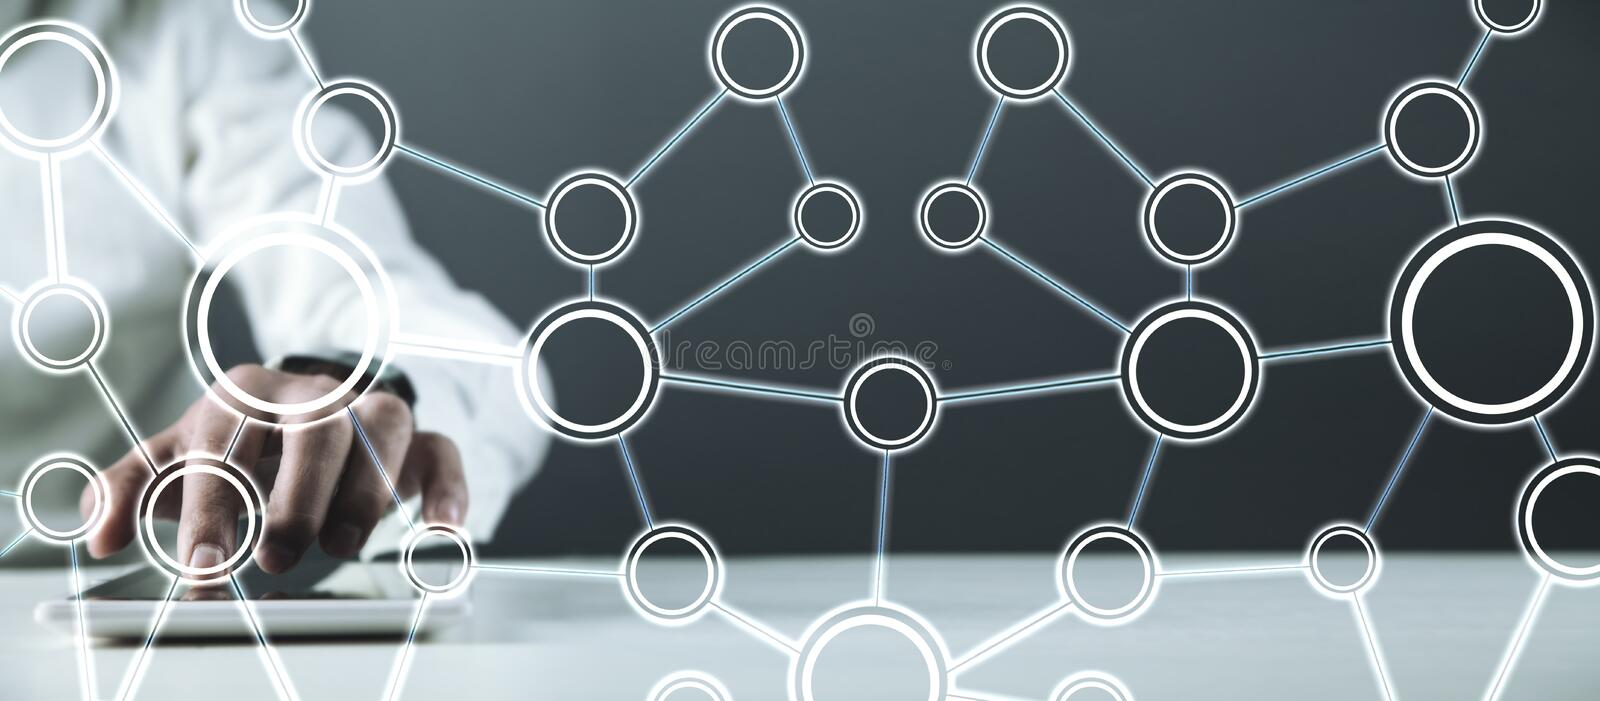 Concept of Network. Internet communication royalty free stock image